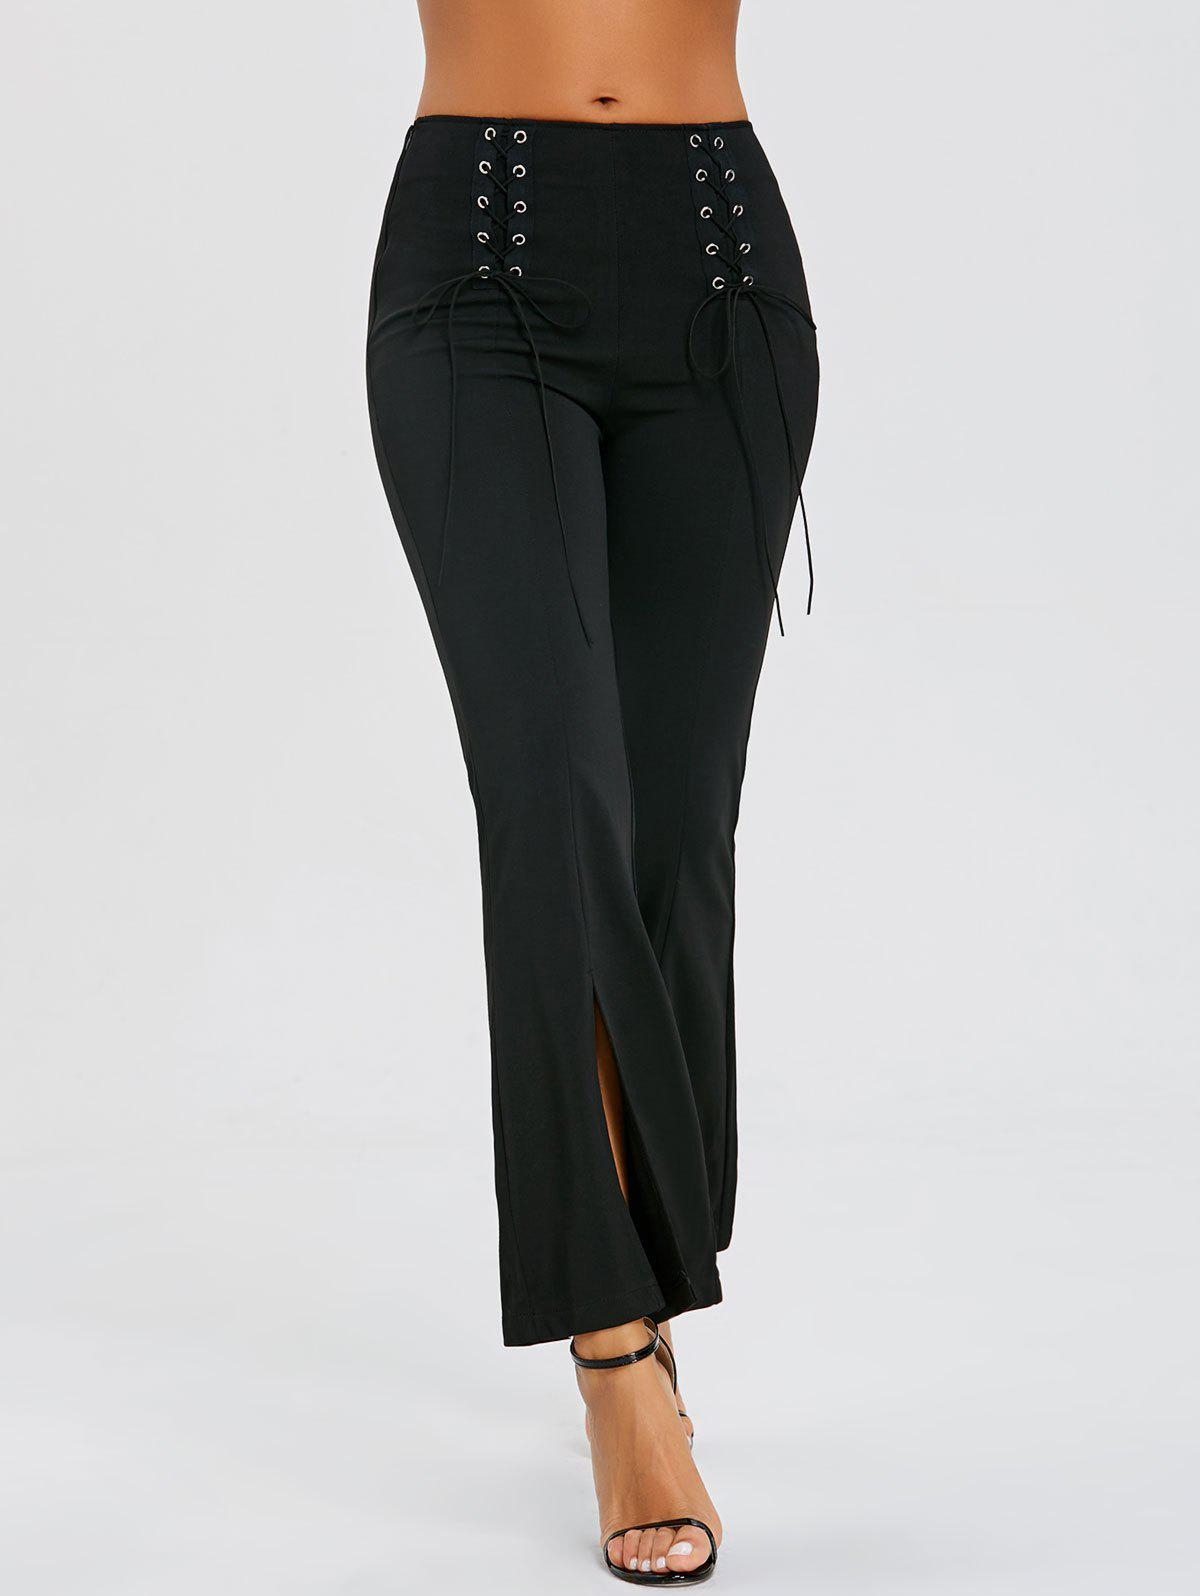 Lace Up Slit High Waisted Bell Bottom Pants - BLACK S